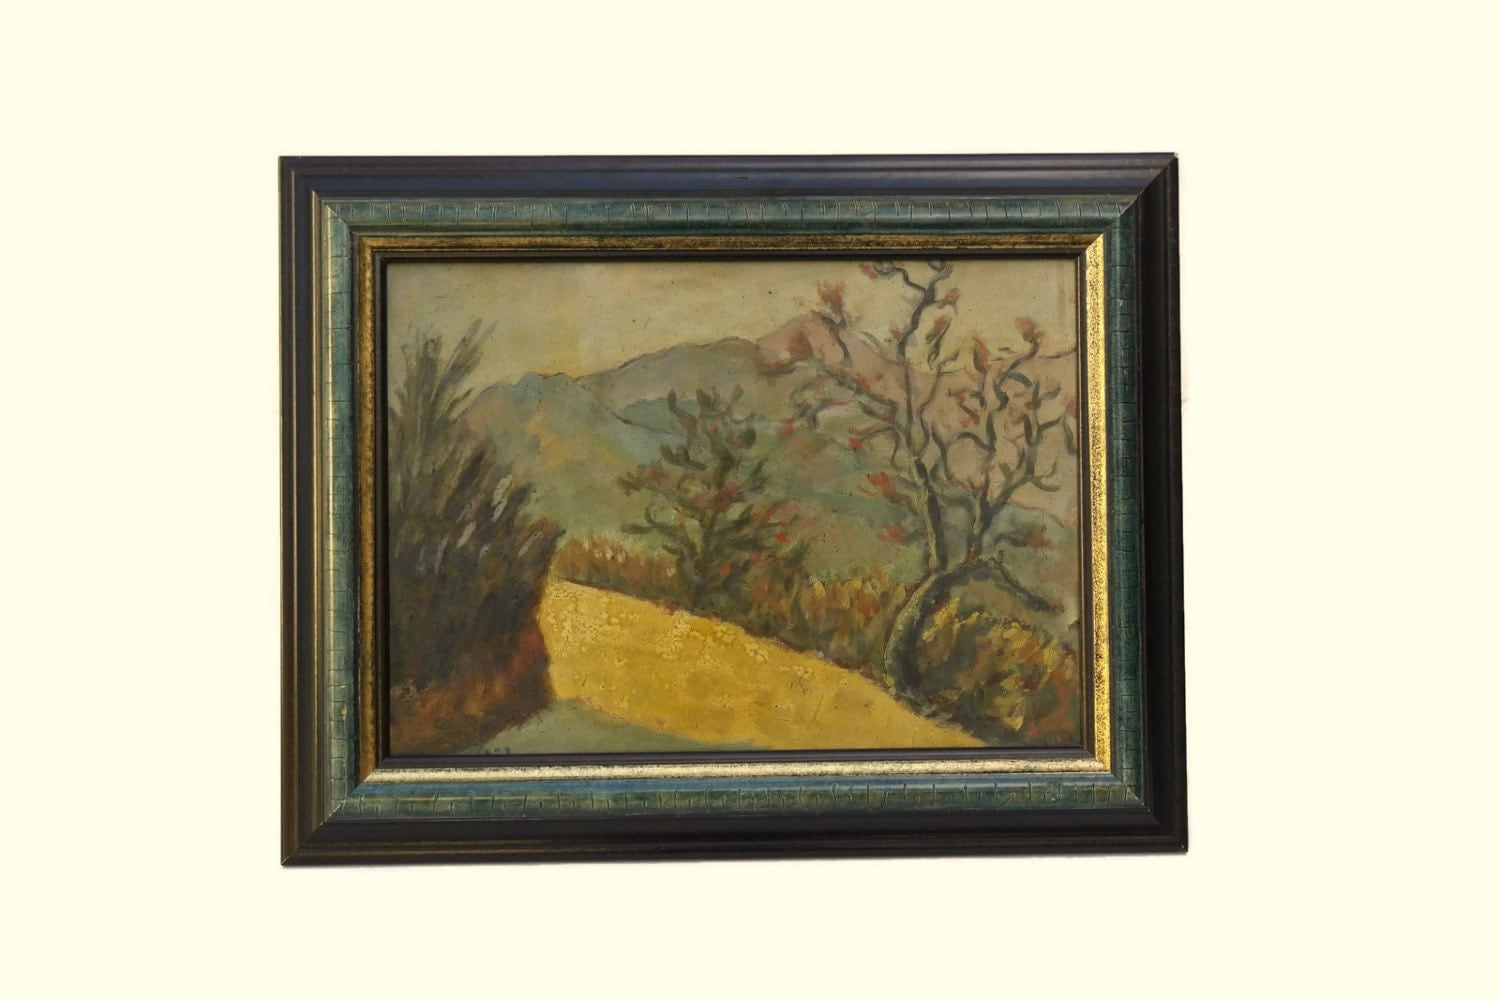 Rustic French Wall Decor : French country landscape painting rustic decor framed art